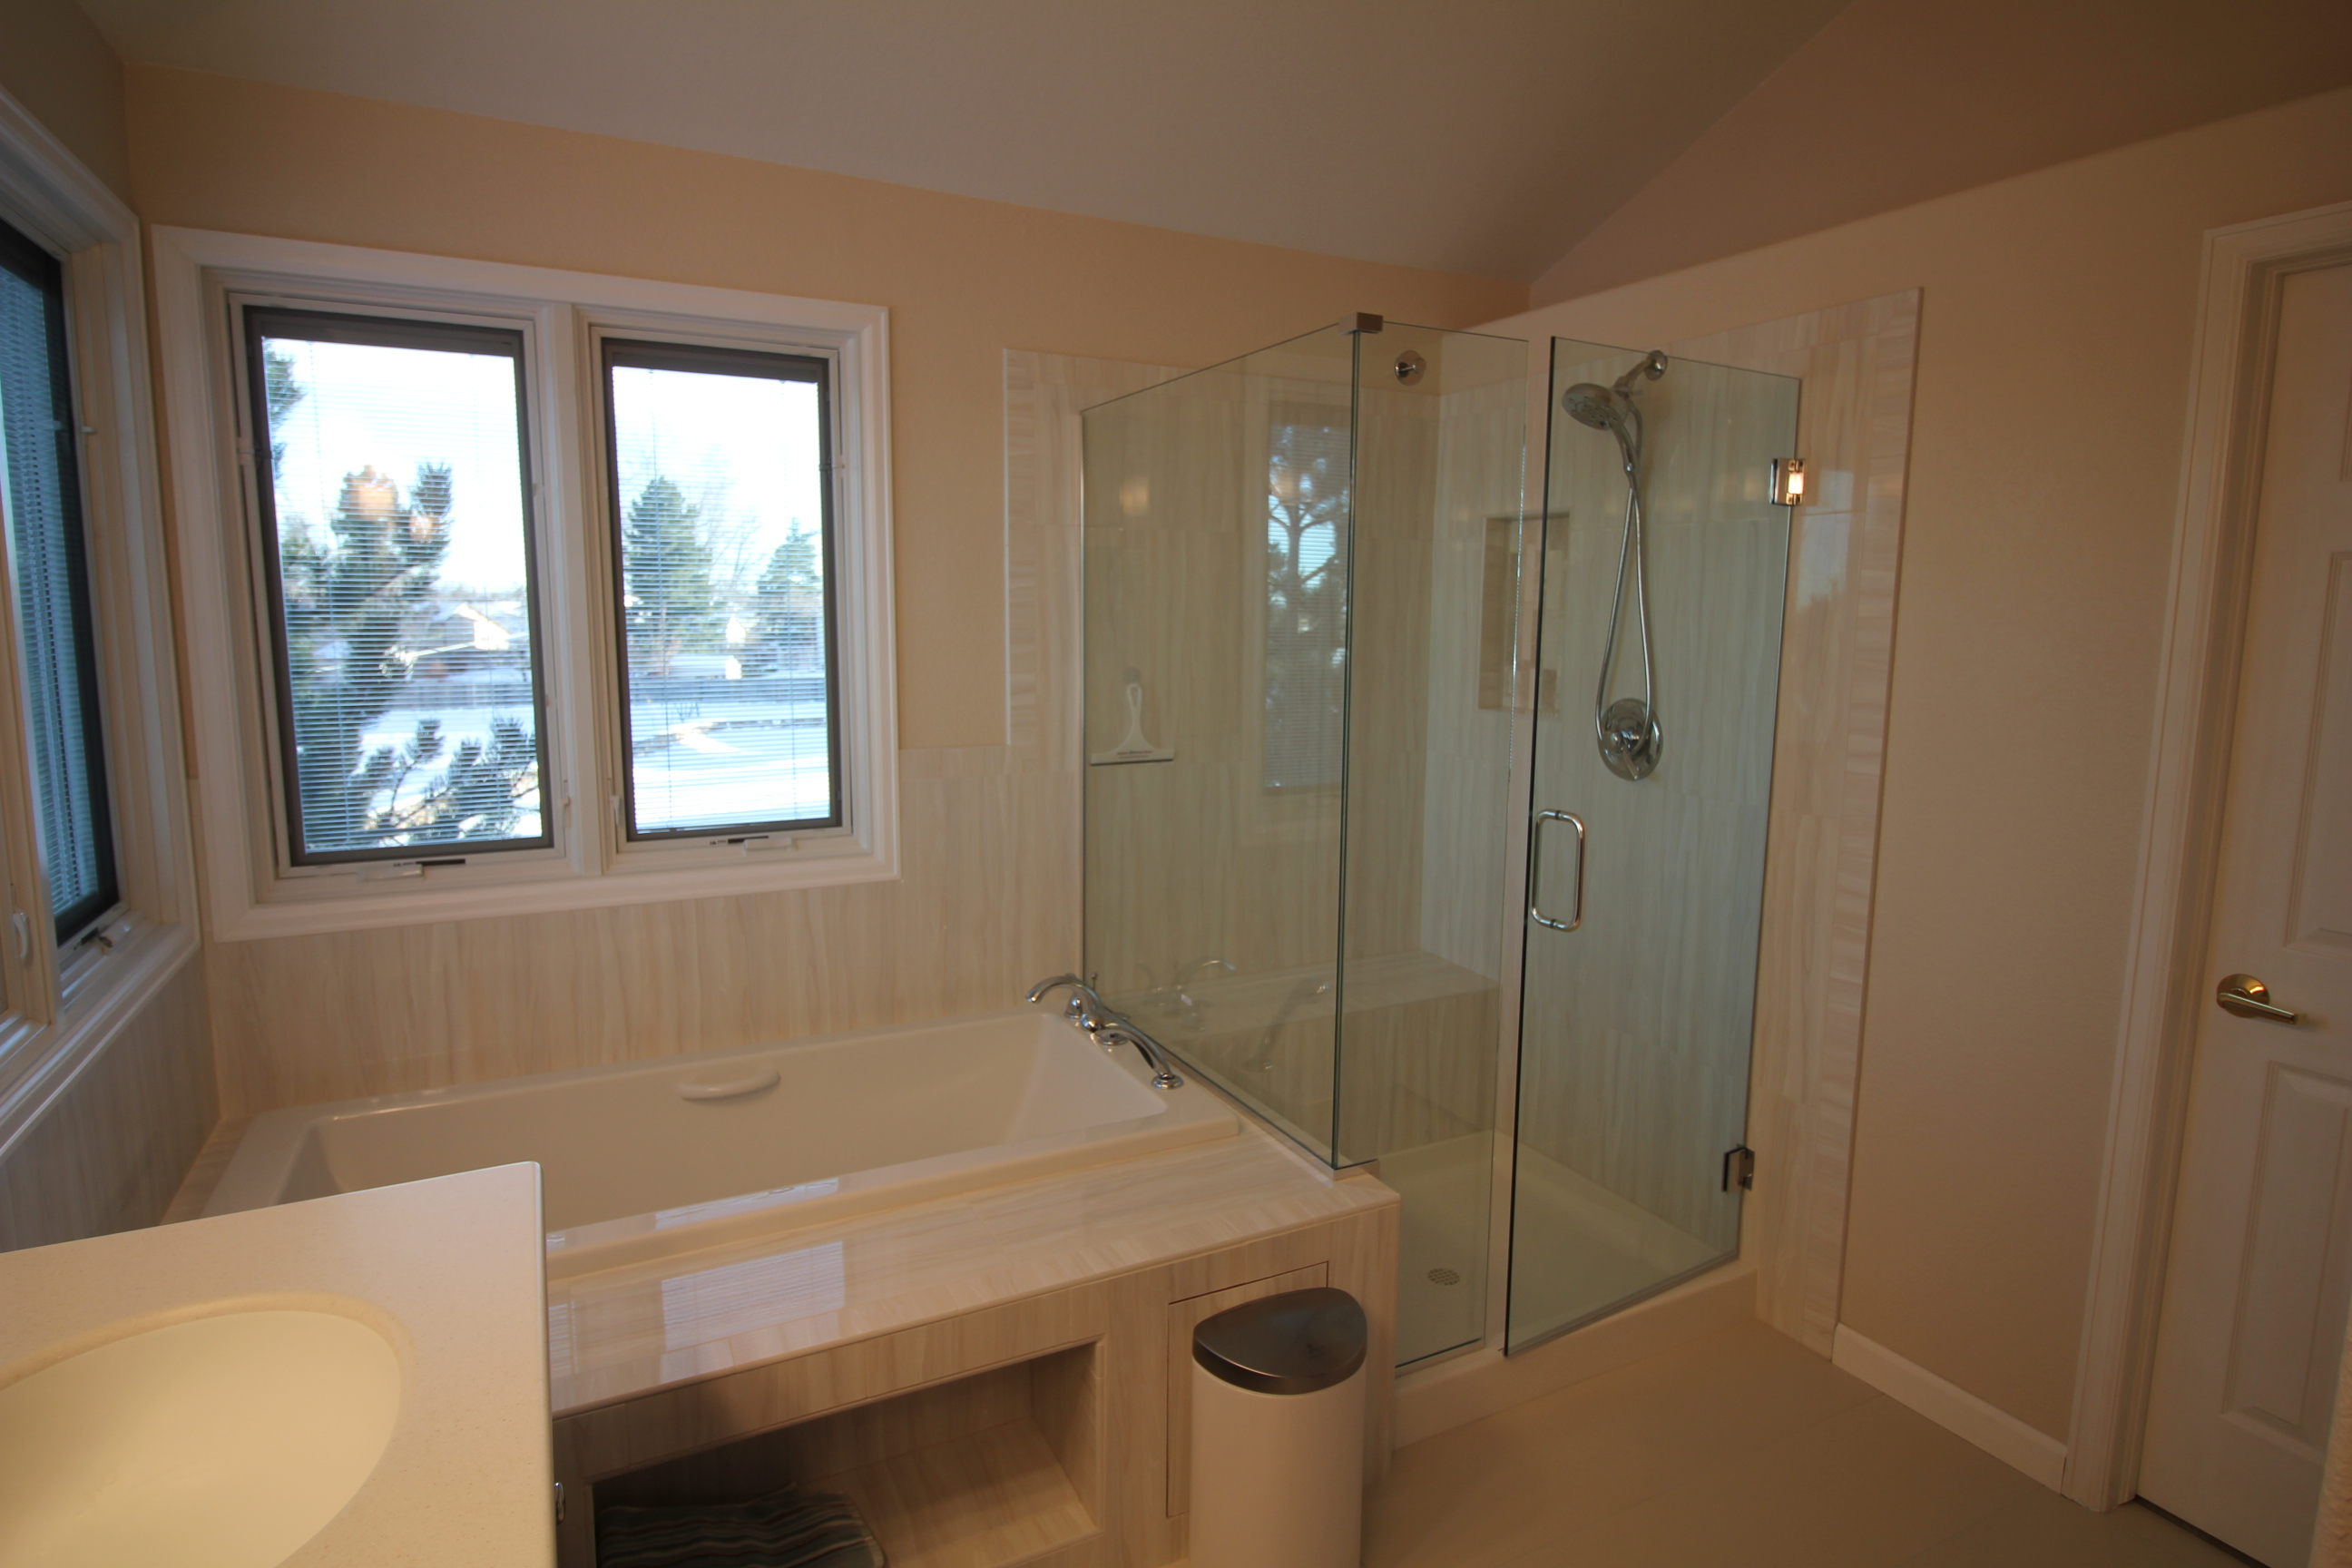 Master Bathroom Remodel Lakewood Vista Remodeling - Bathroom remodeling lakewood